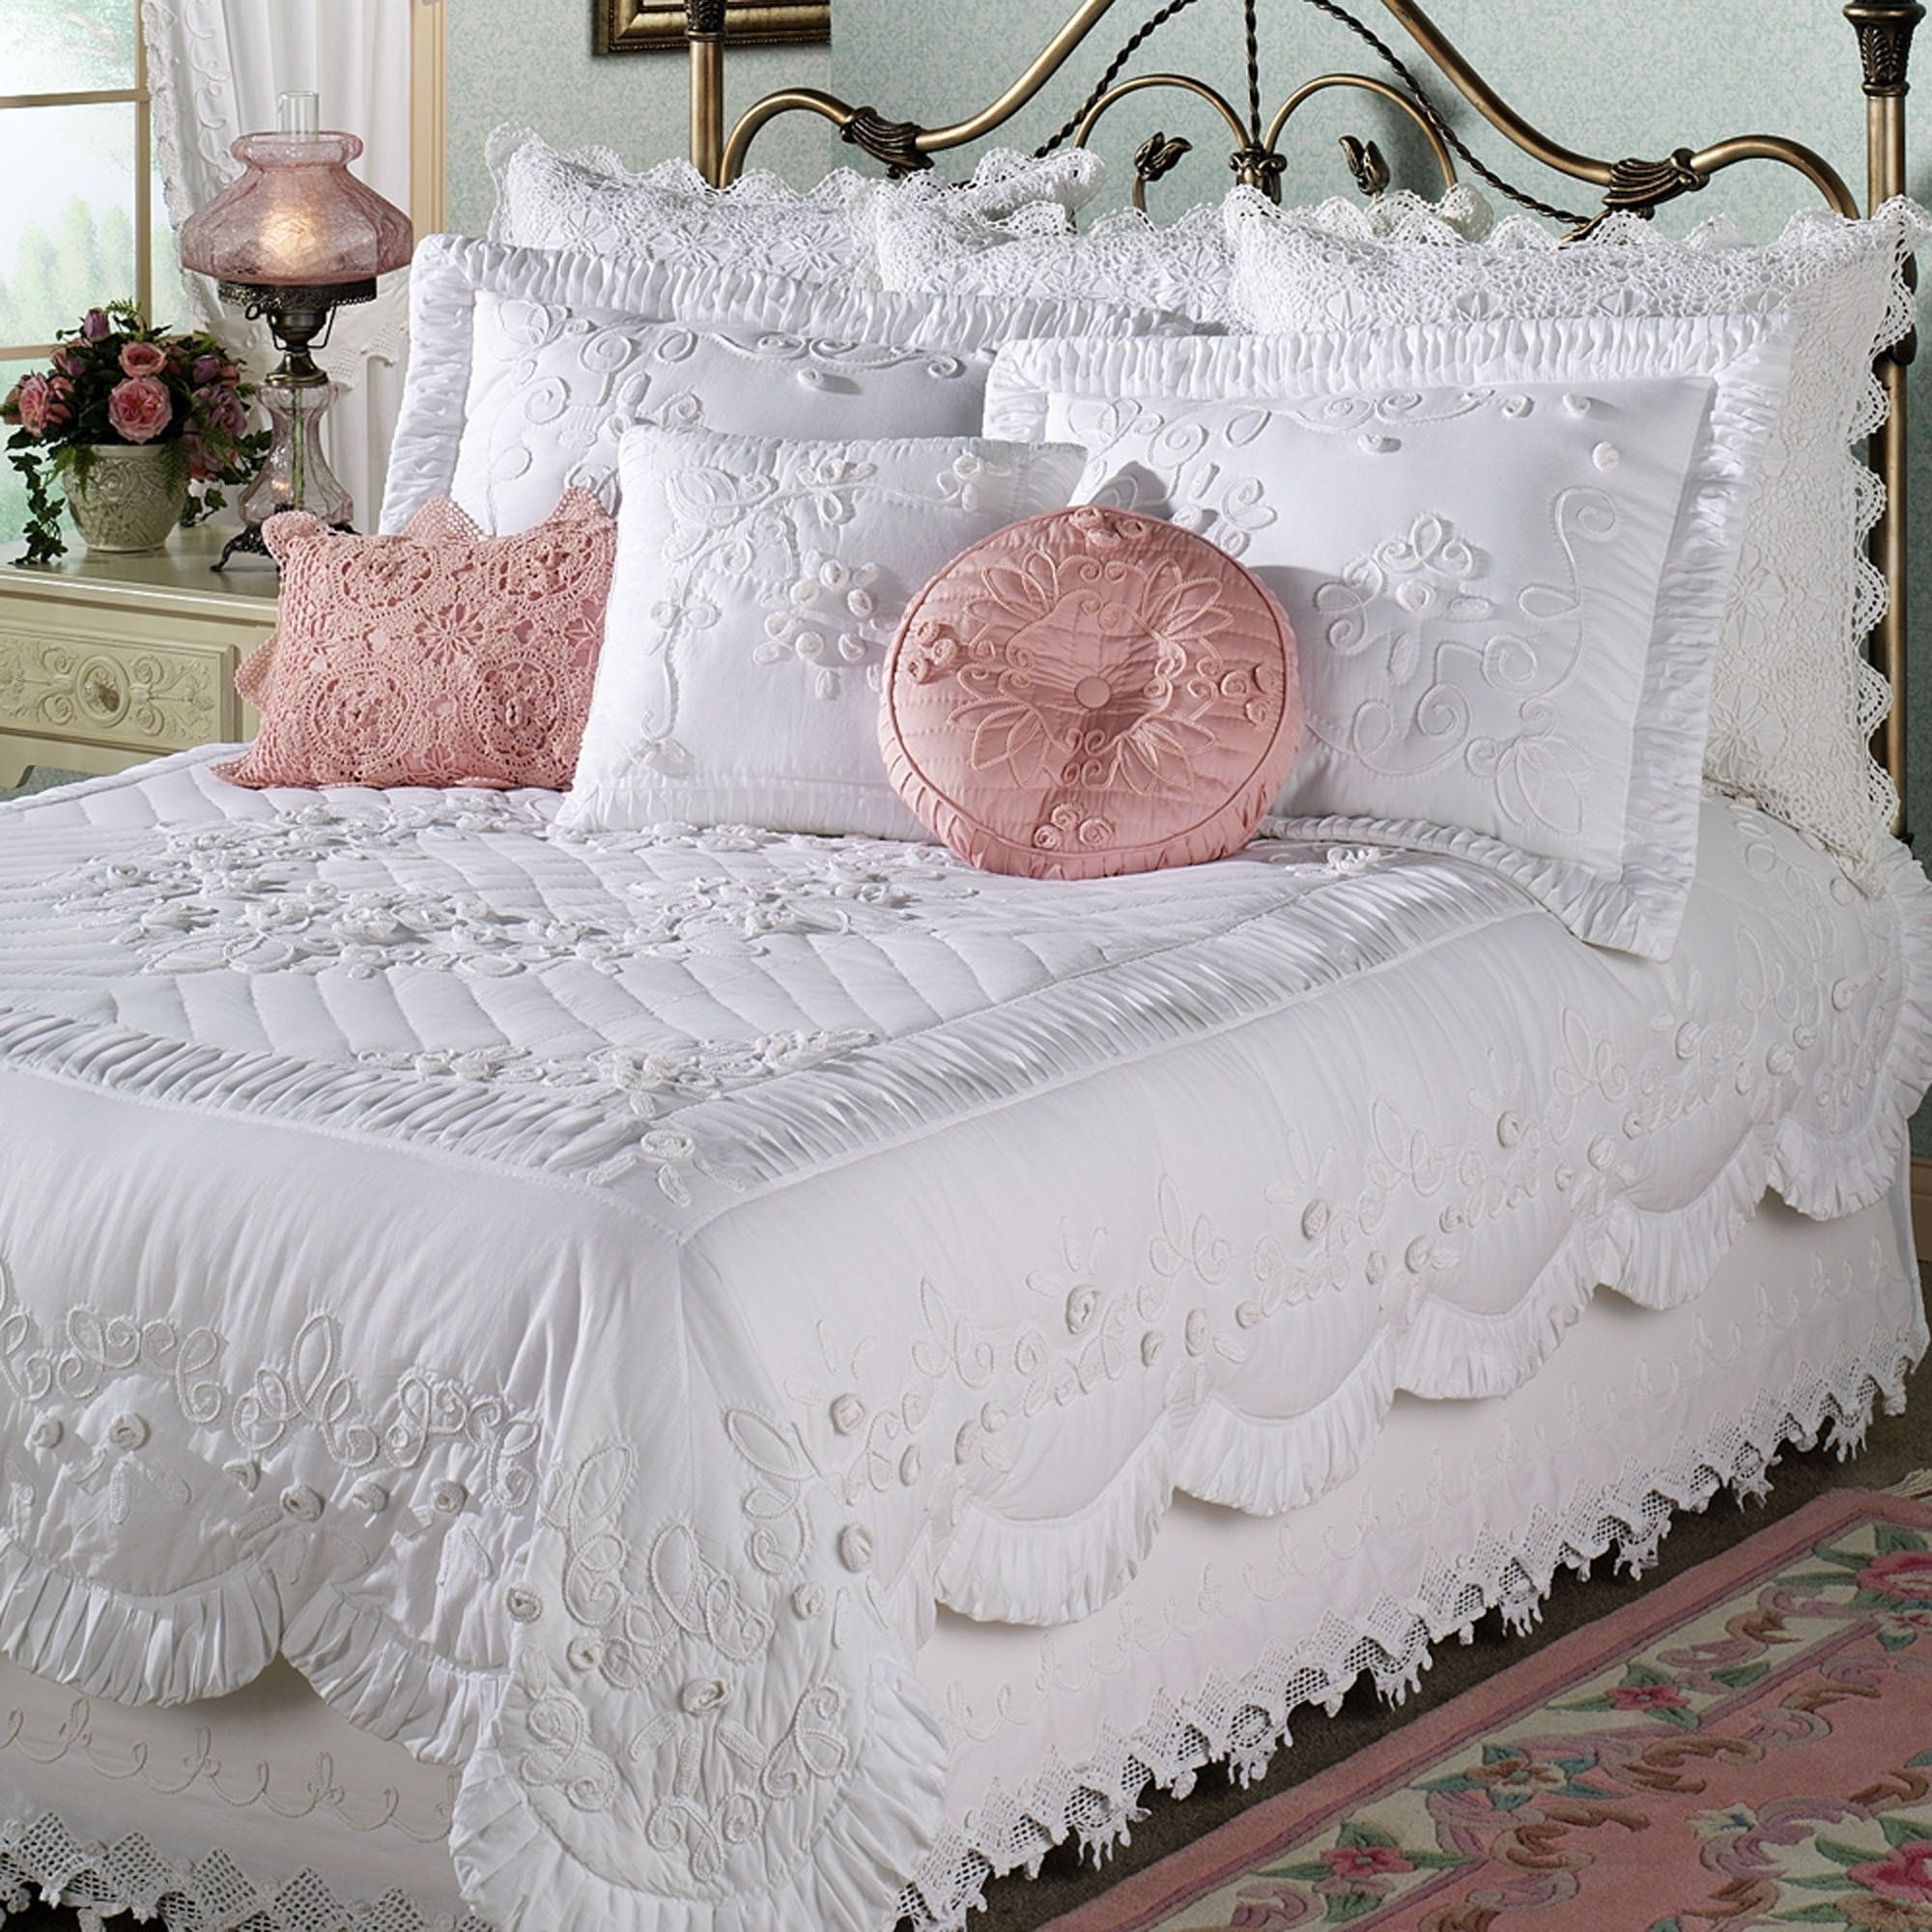 Crocheted Bed Skirts Ideas On Foter